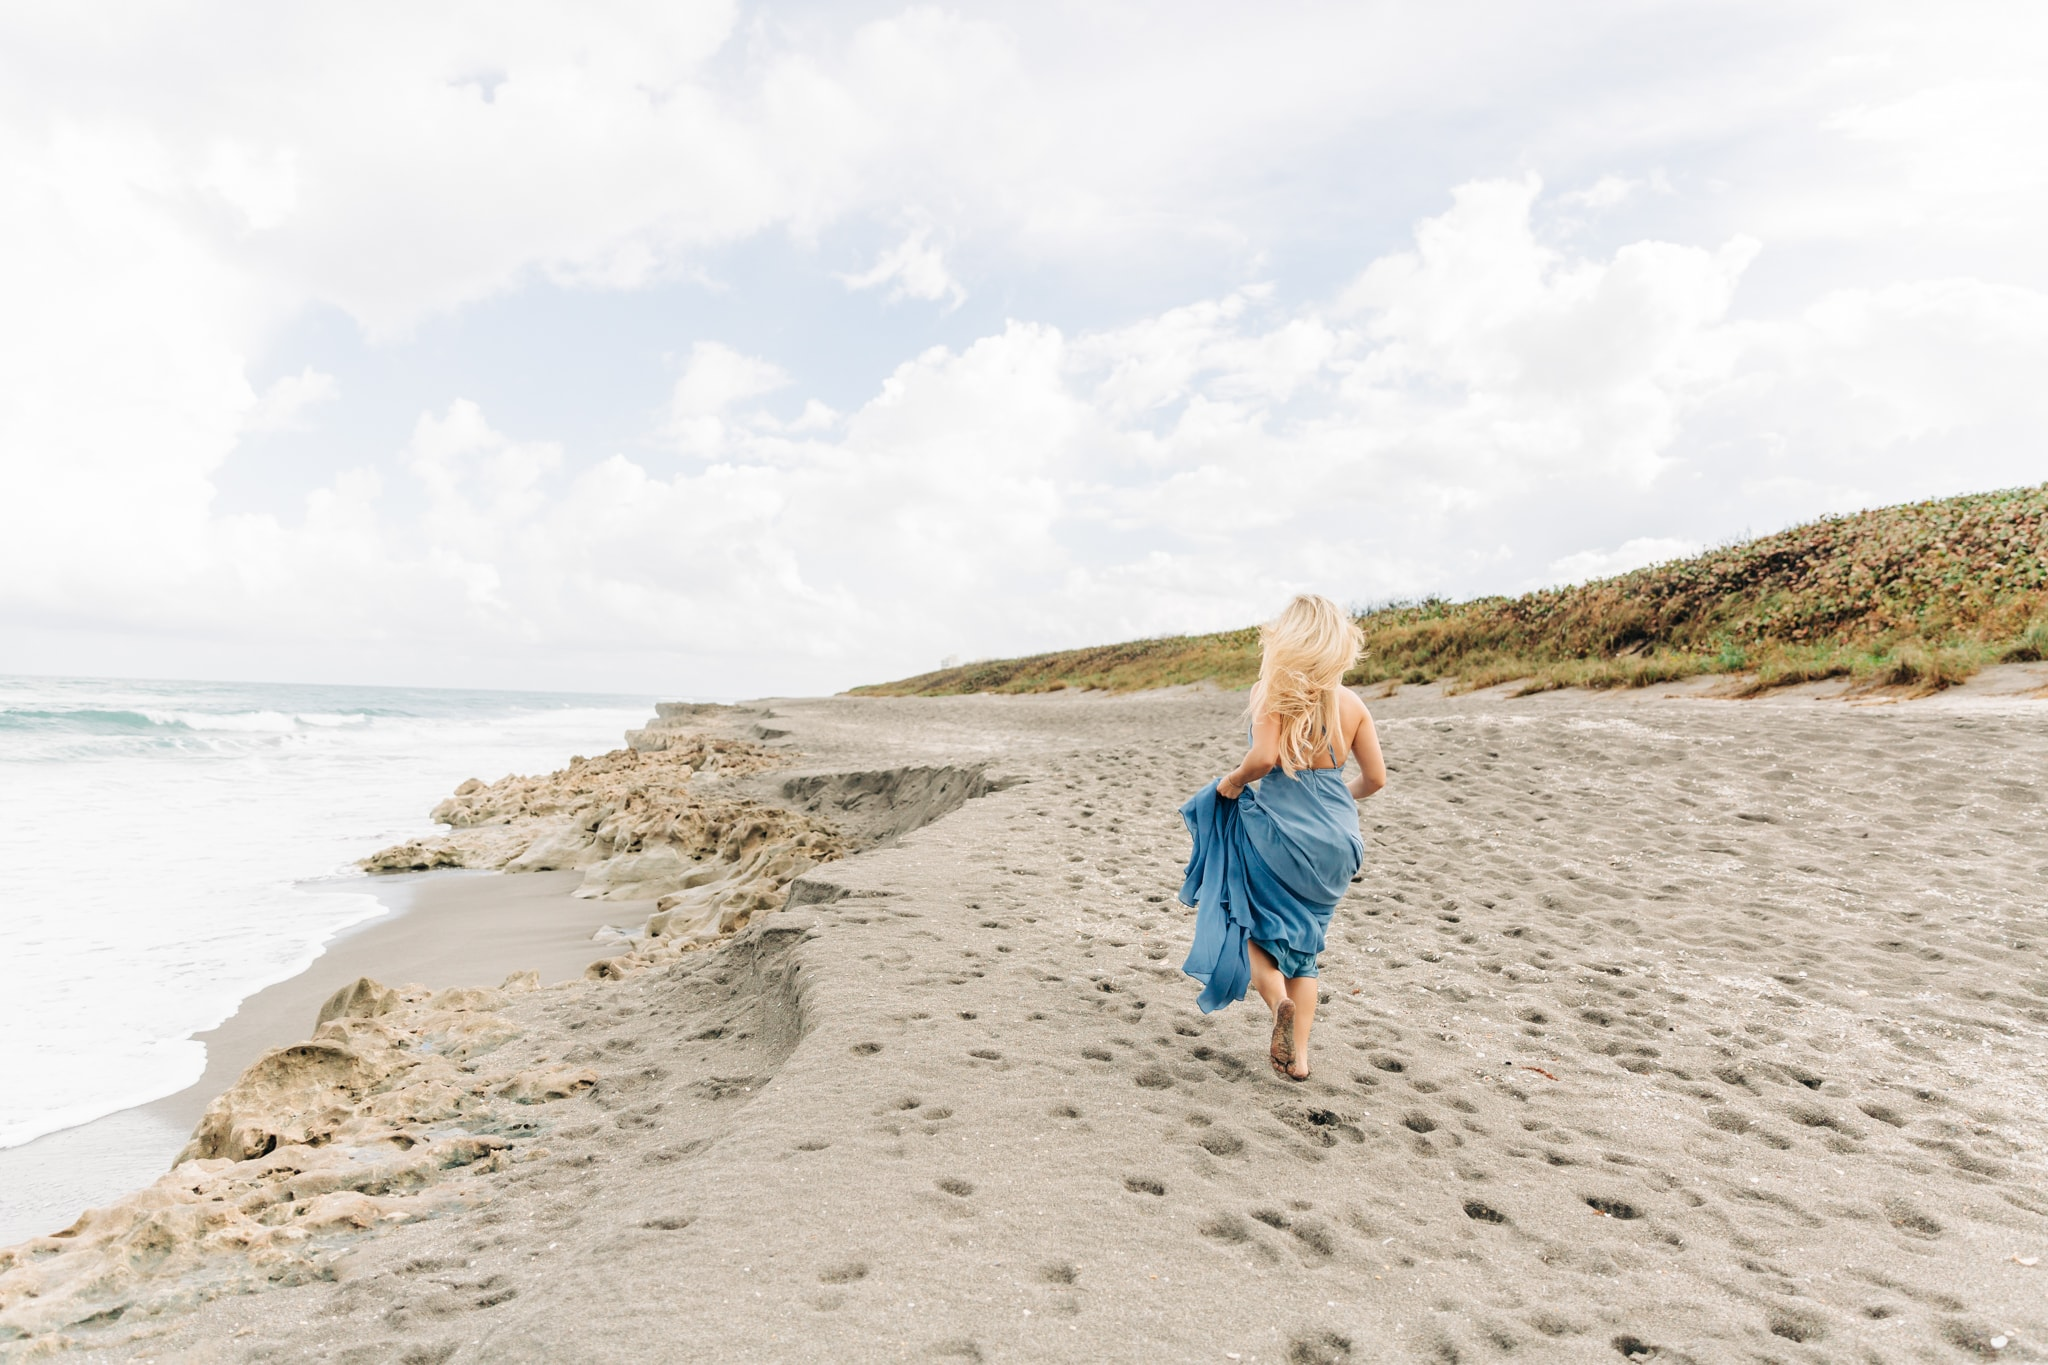 woman running down the beach in a blue dress with a storm on the horizon